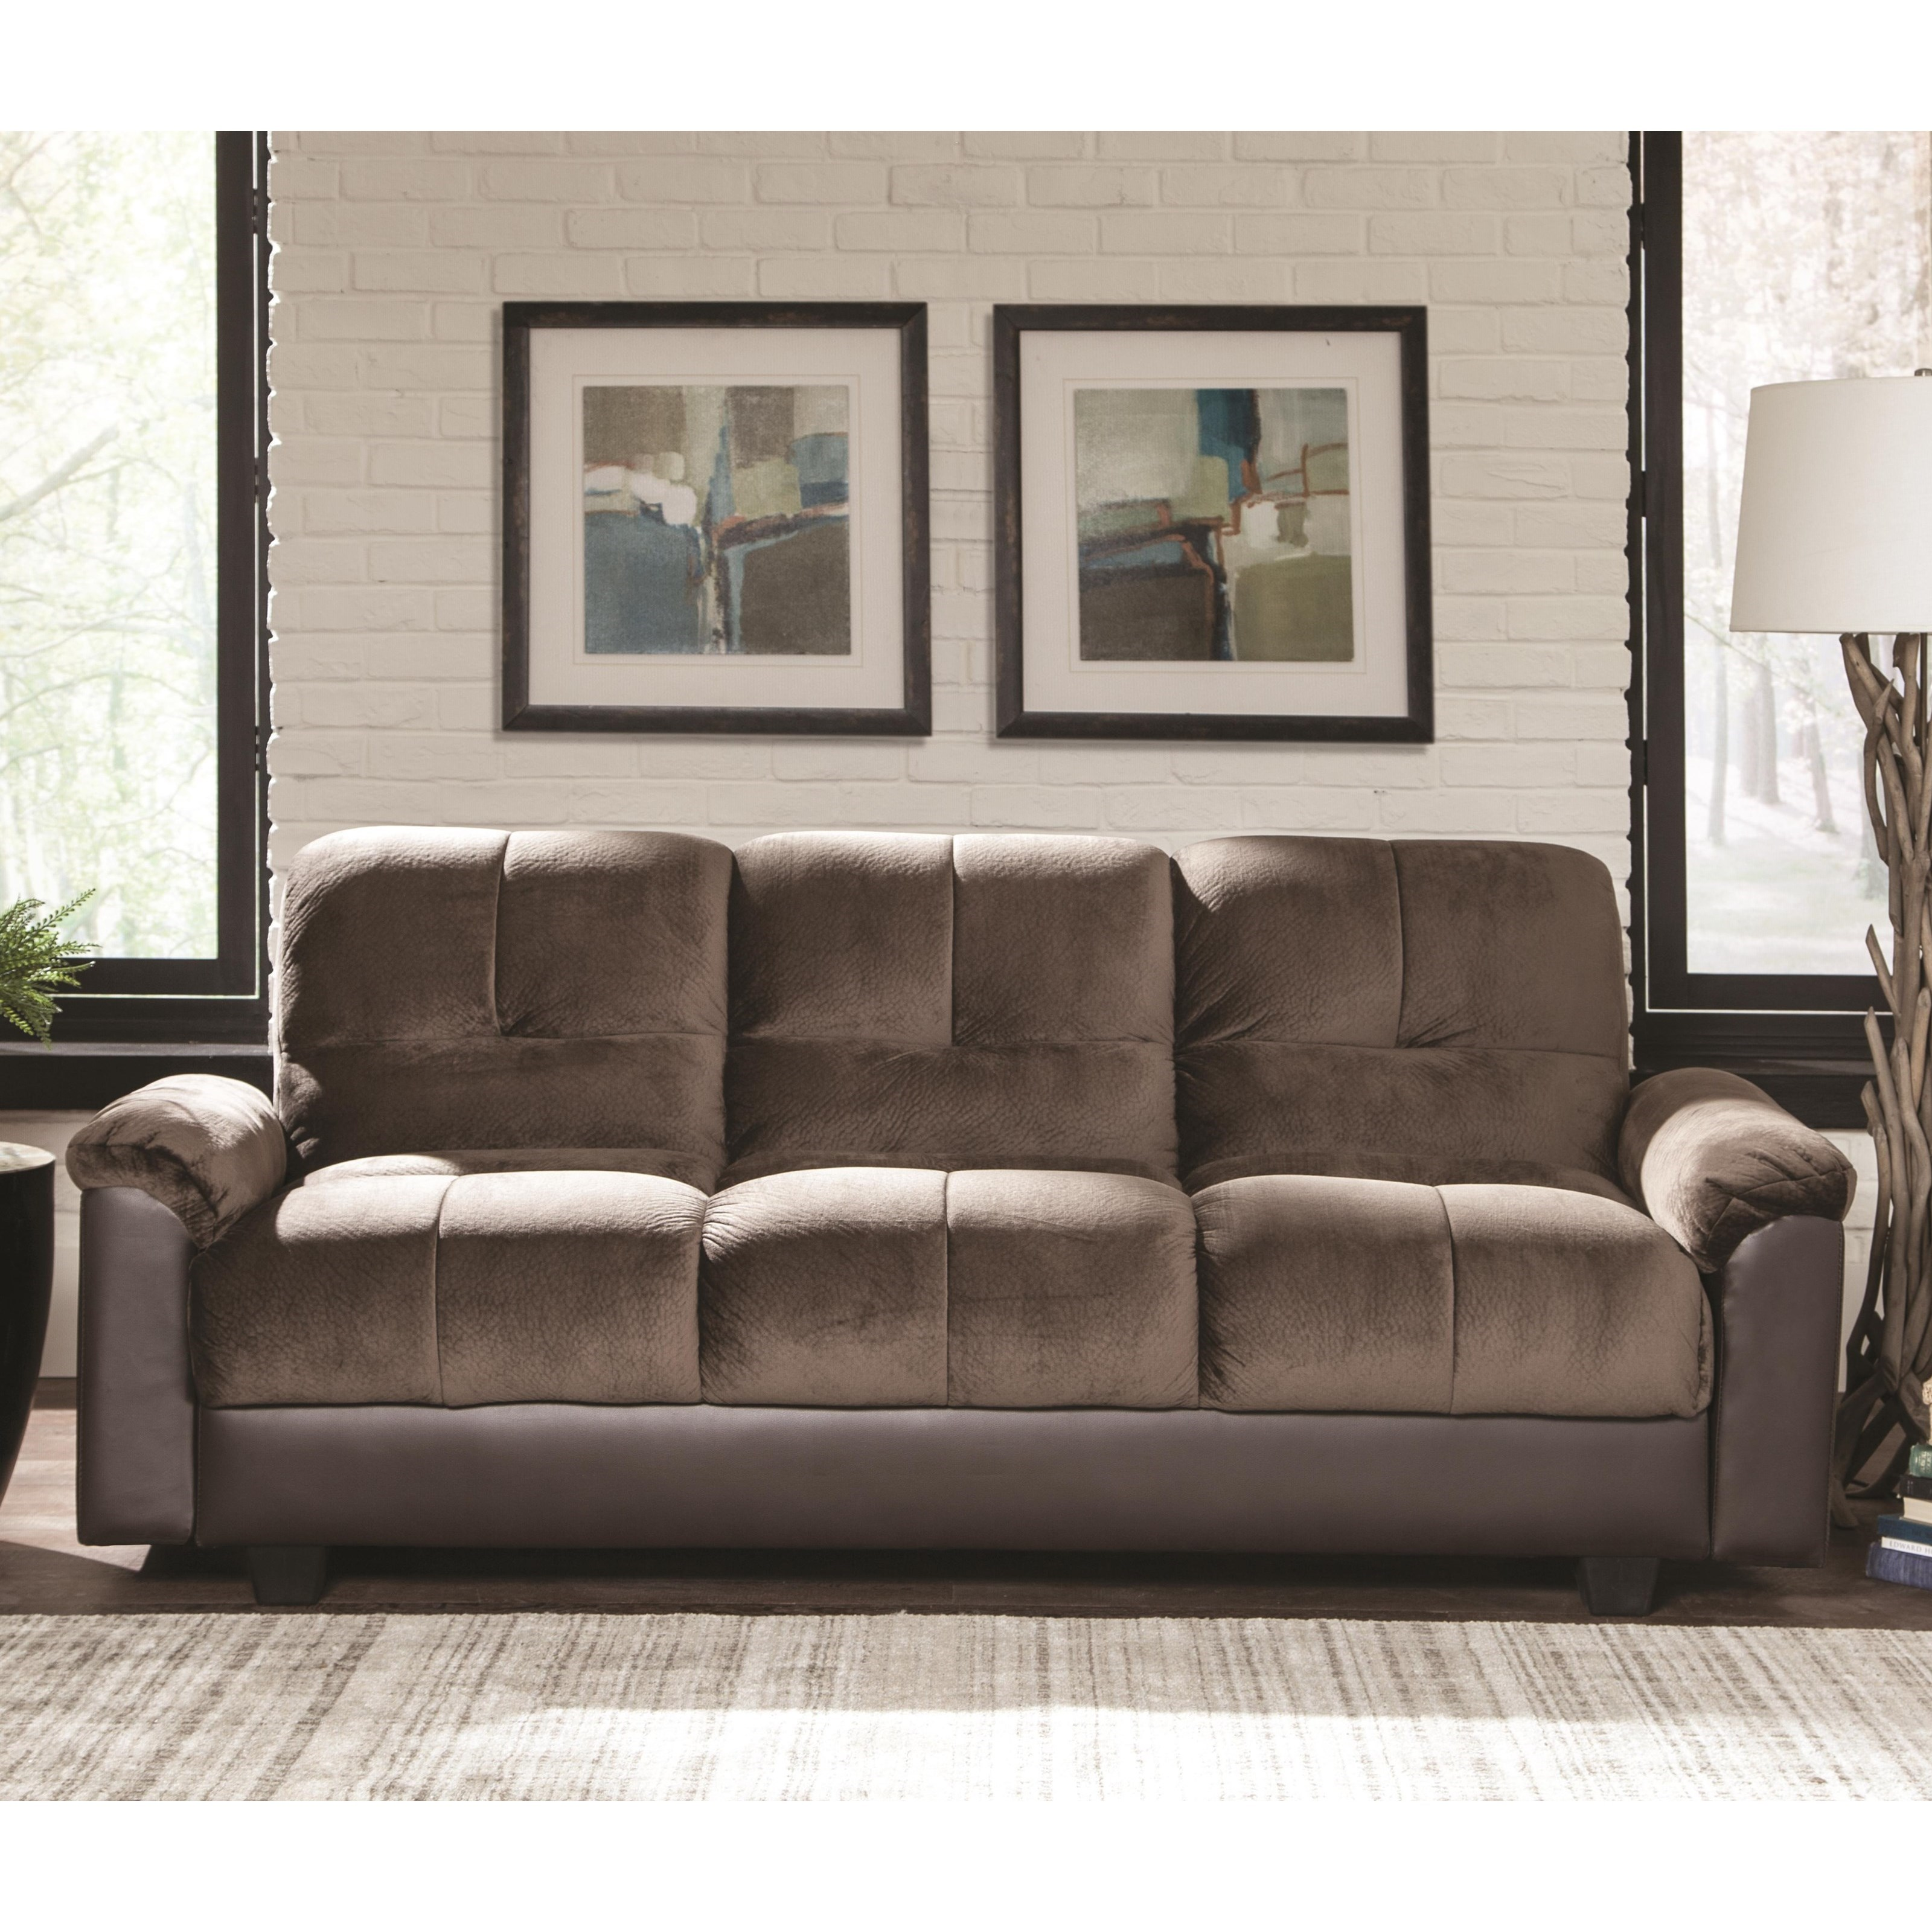 coasters sofa bed helmond sport telstar sofascore coaster beds and futons two tone with